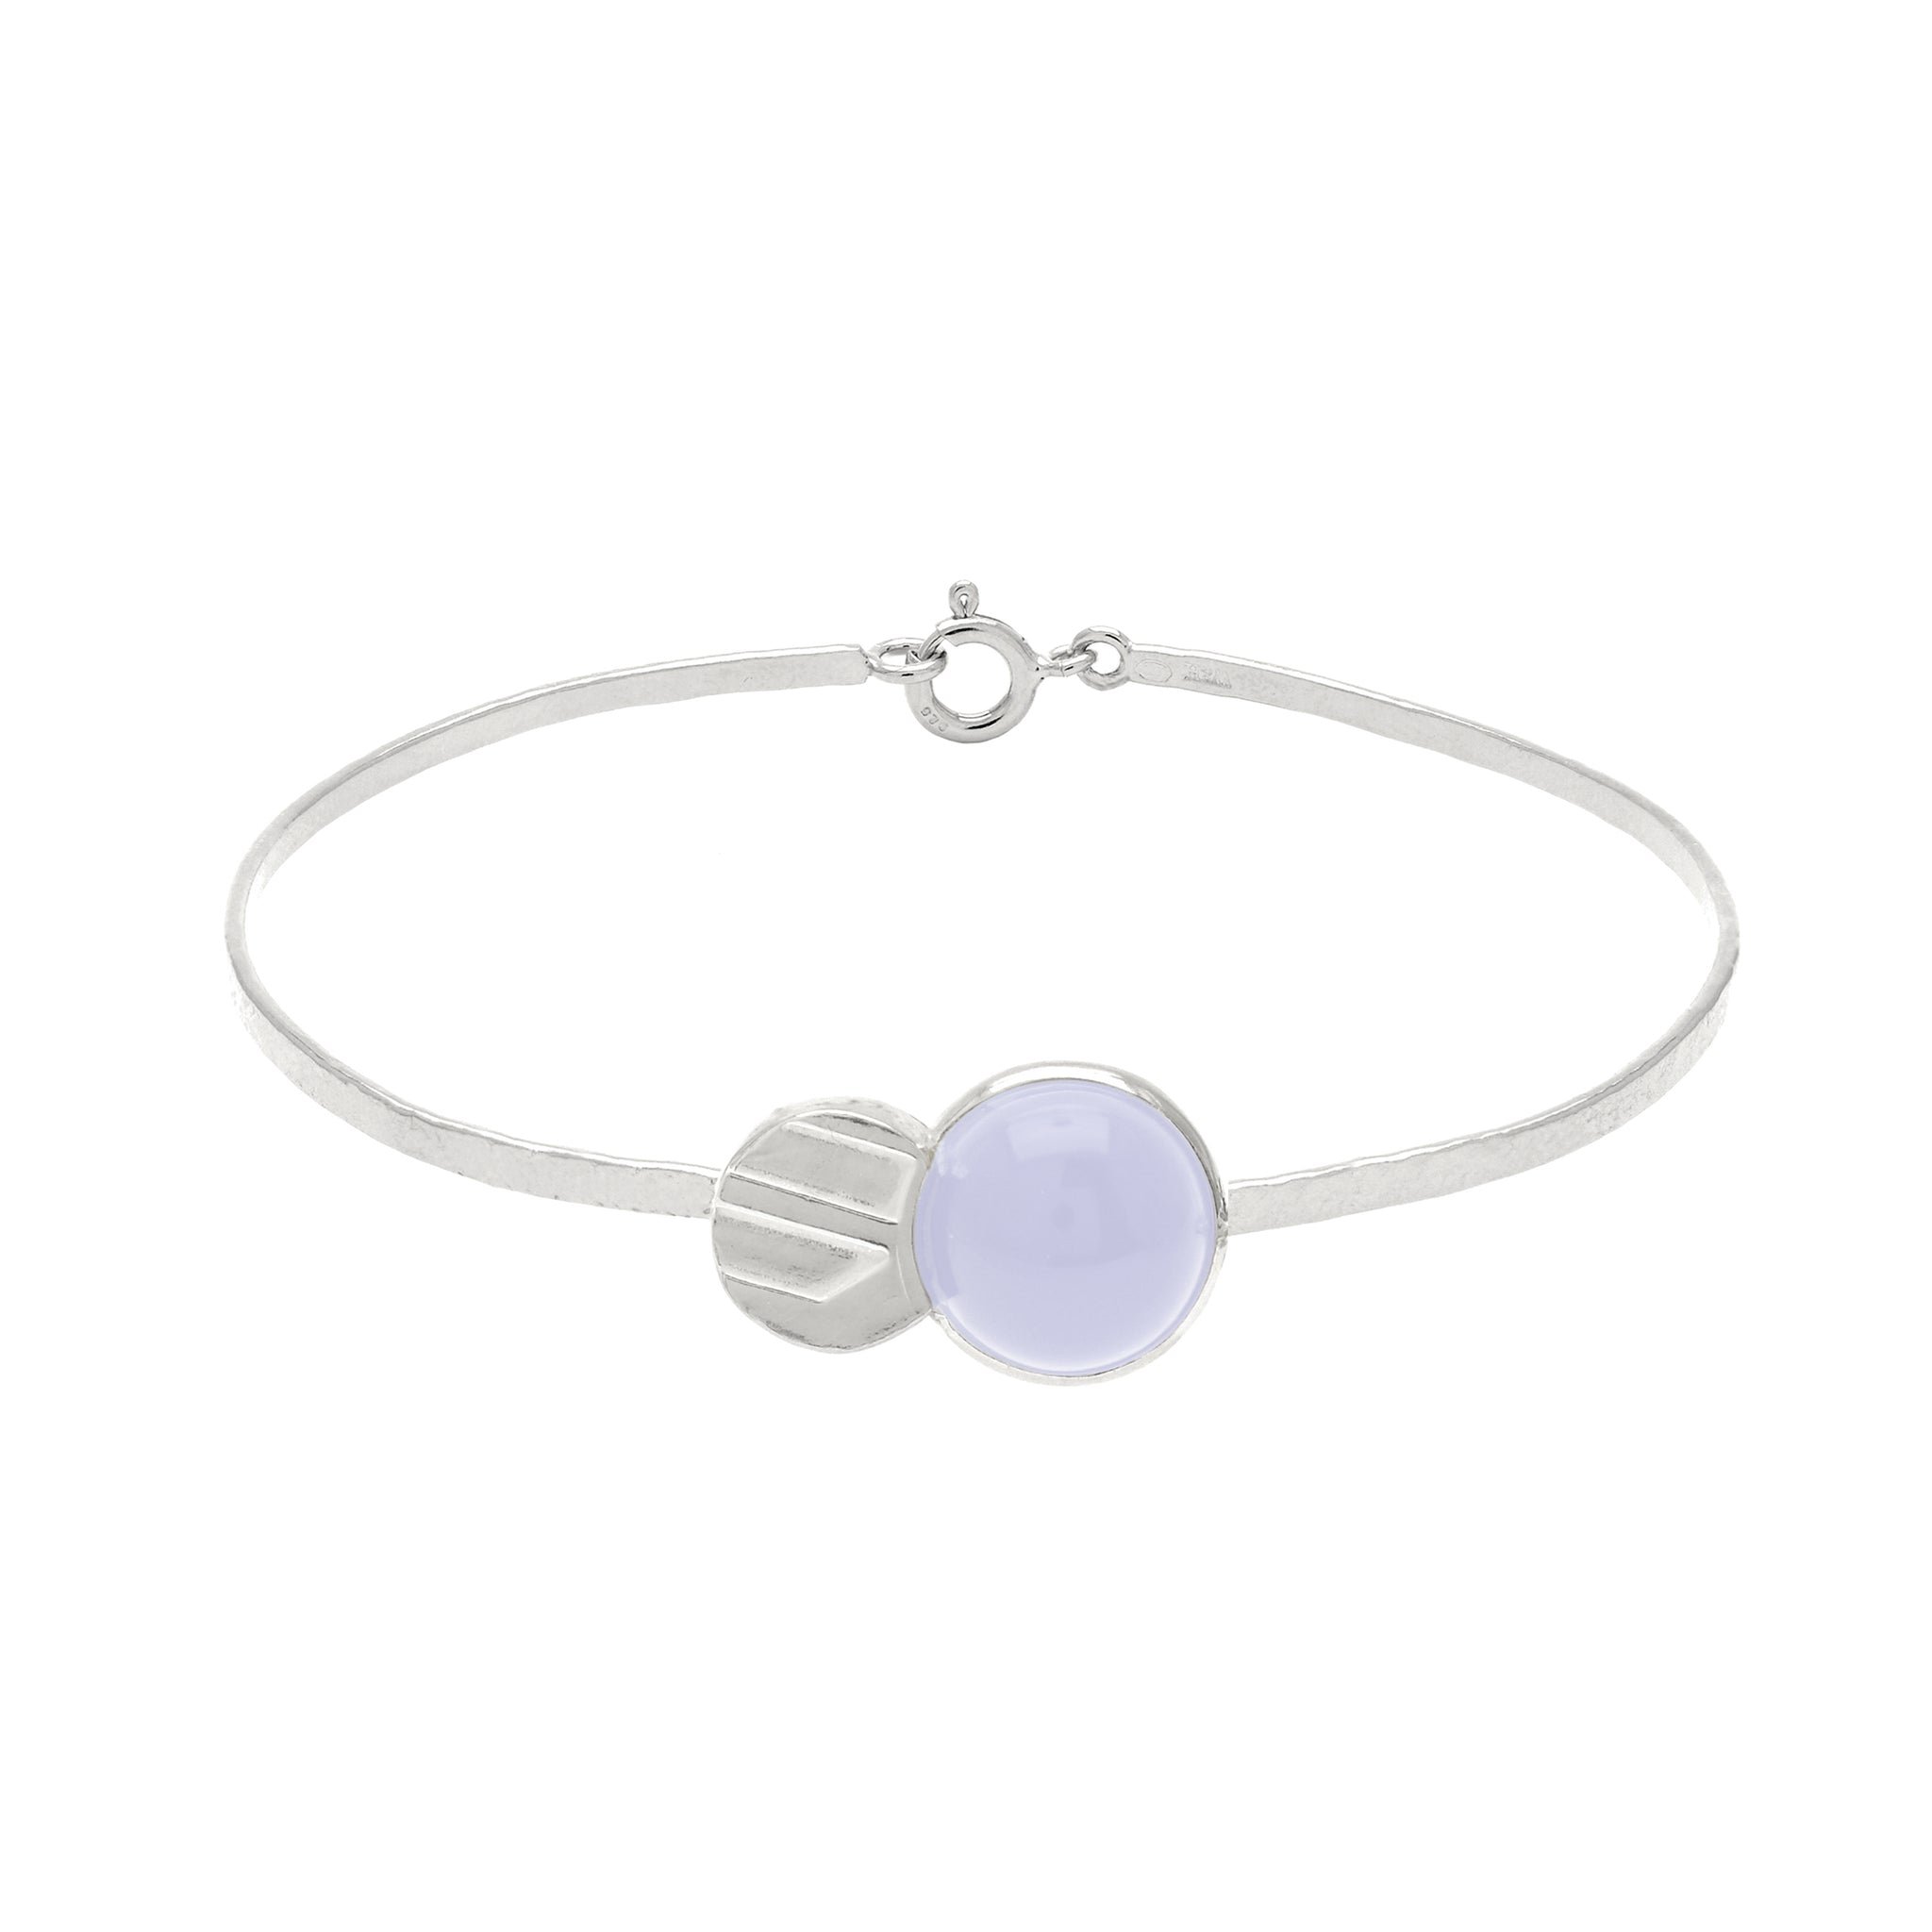 Elegant Bracelet with and blue Chalcedony stone